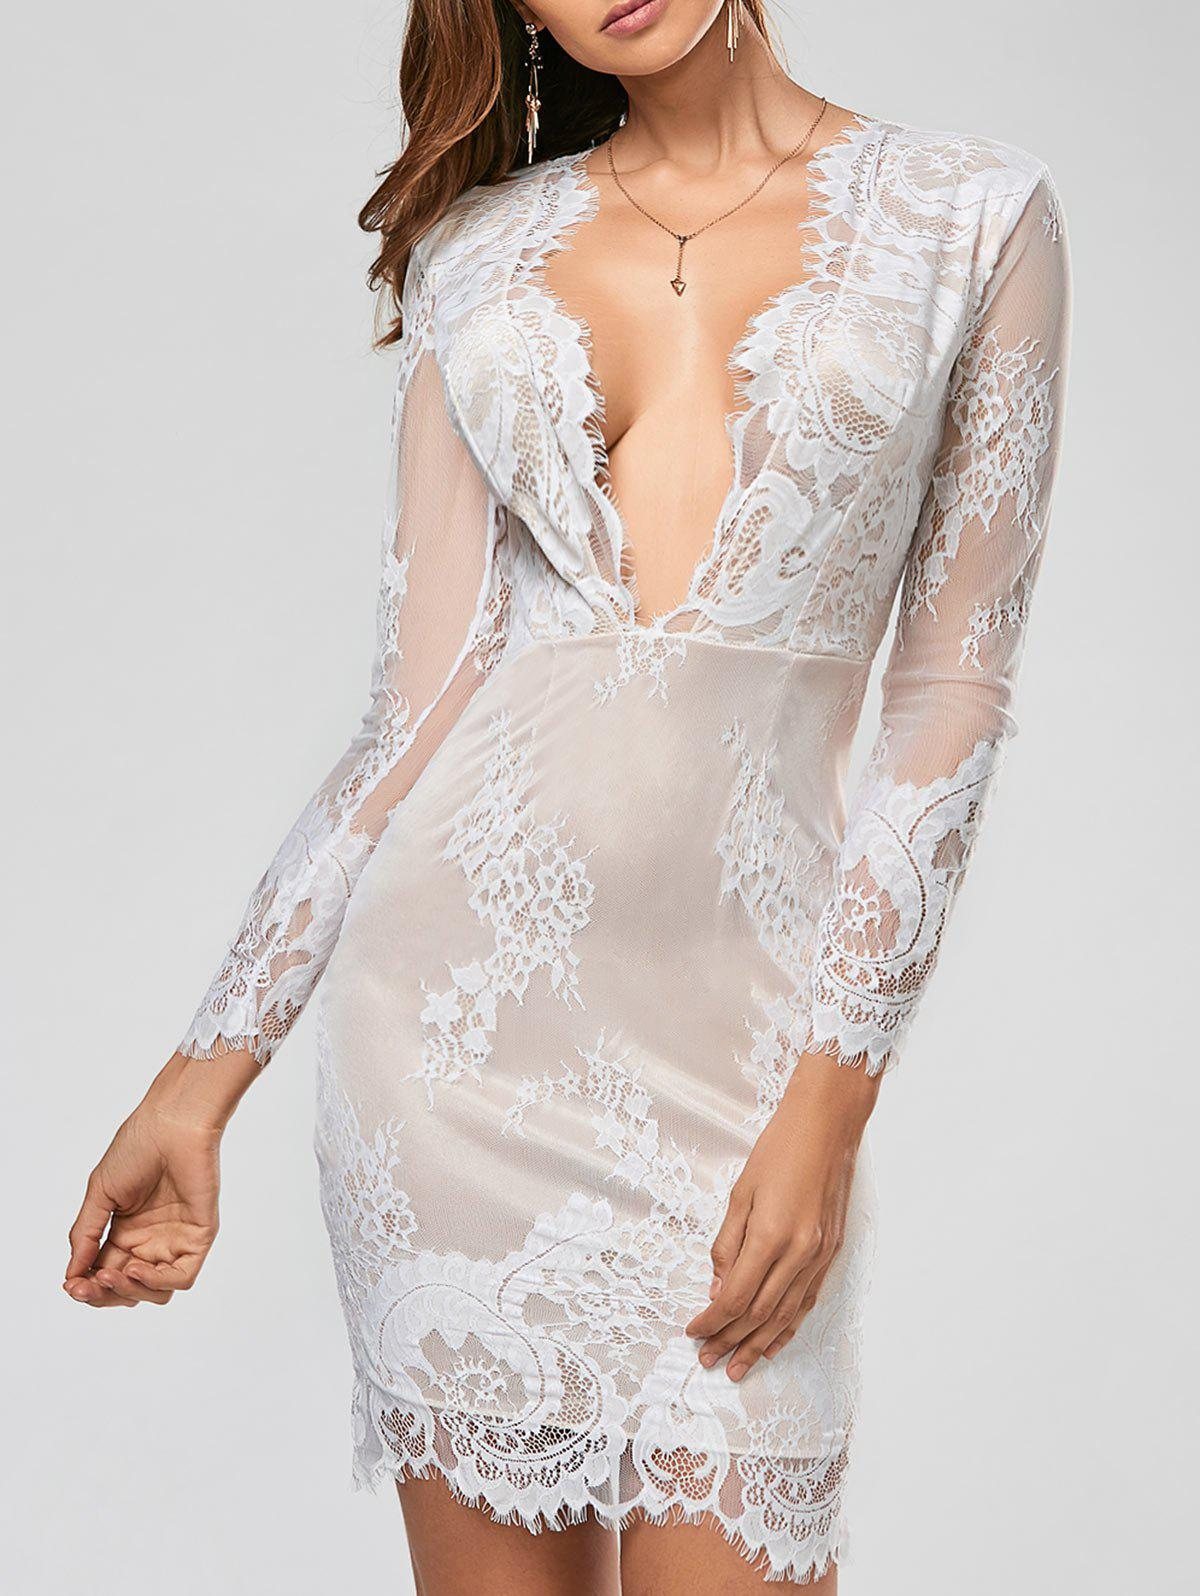 Sexy Plunging Neck Long Sleeve See-Through Flower Pattern Hot DressWOMEN<br><br>Size: L; Color: WHITE; Style: Sexy &amp; Club; Material: Polyester,Lace; Silhouette: Sheath; Dresses Length: Knee-Length; Neckline: Plunging Neck; Sleeve Length: Long Sleeves; Pattern Type: Floral; With Belt: No; Season: Spring,Fall; Weight: 0.210KG; Package Contents: 1 x Dress;